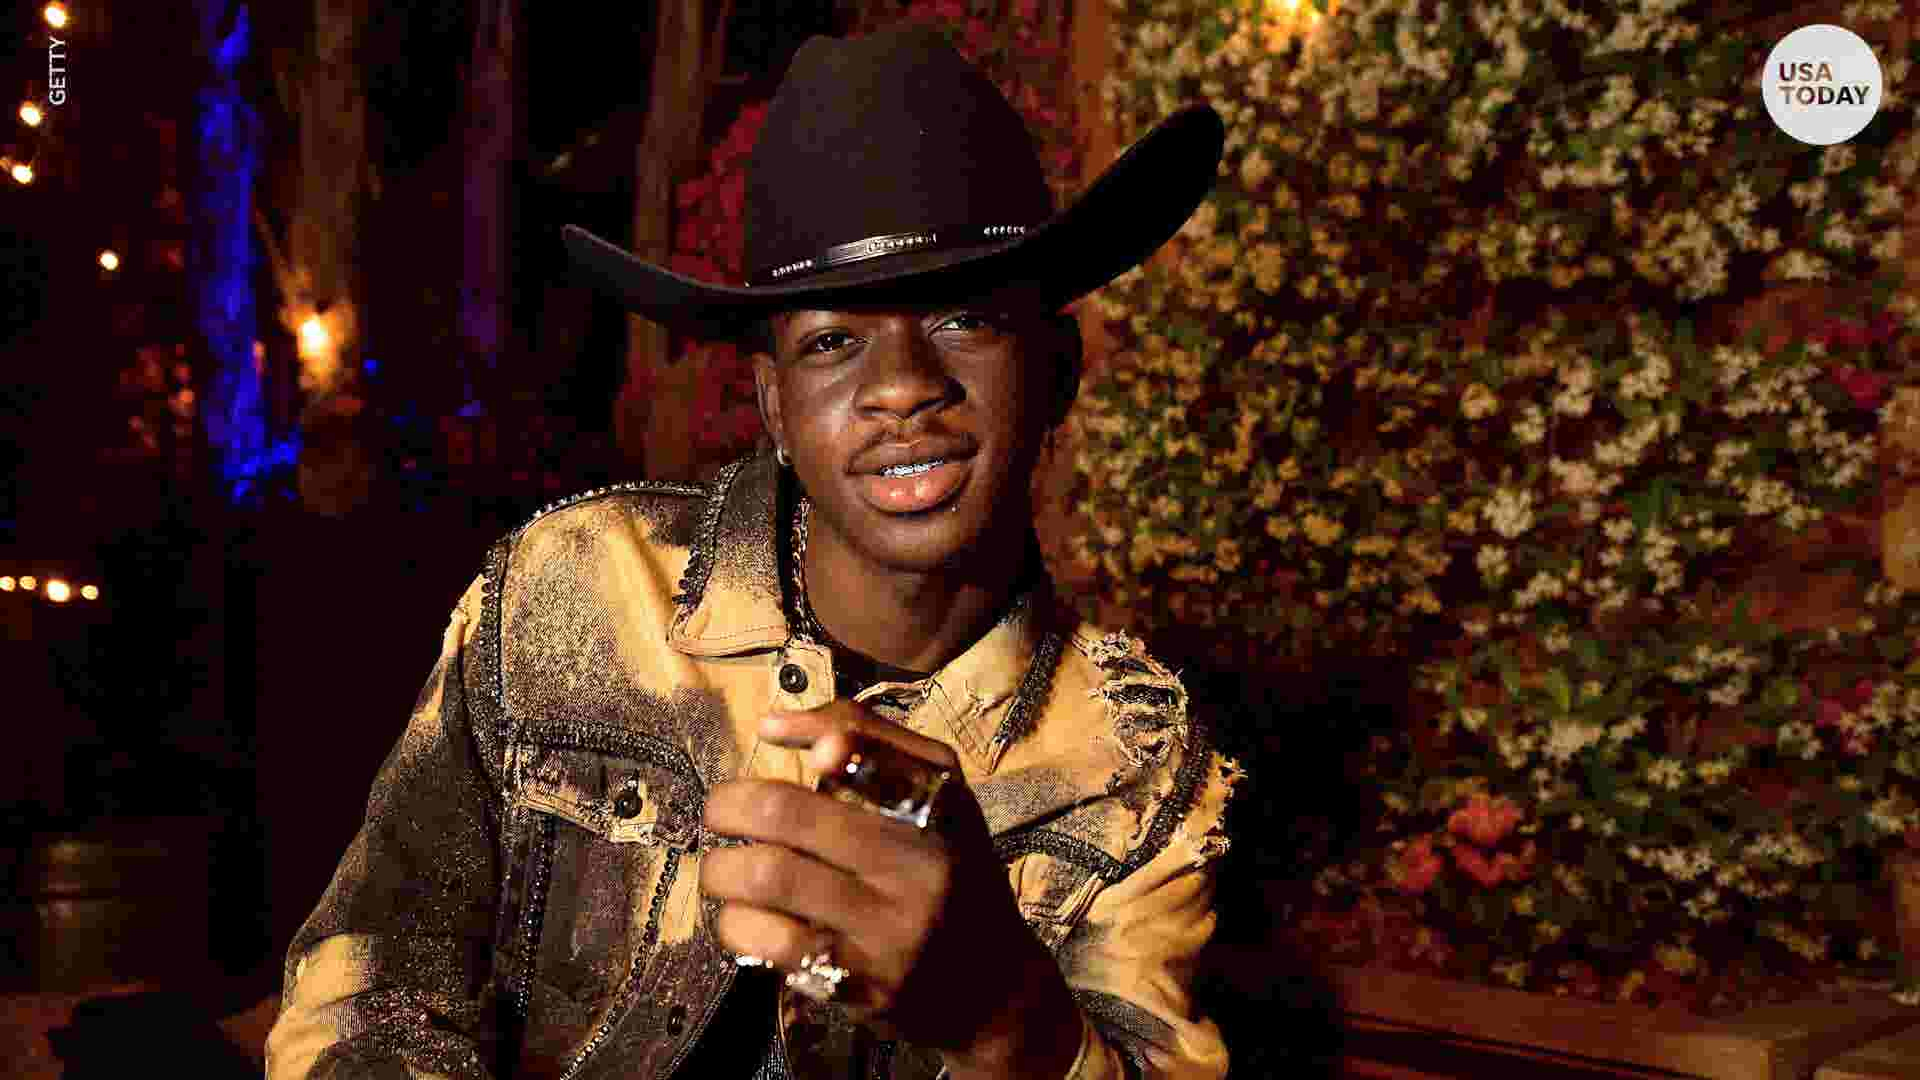 'Old Town Road' rapper Lil Nas X comes out as gay in new song 'c7osure'